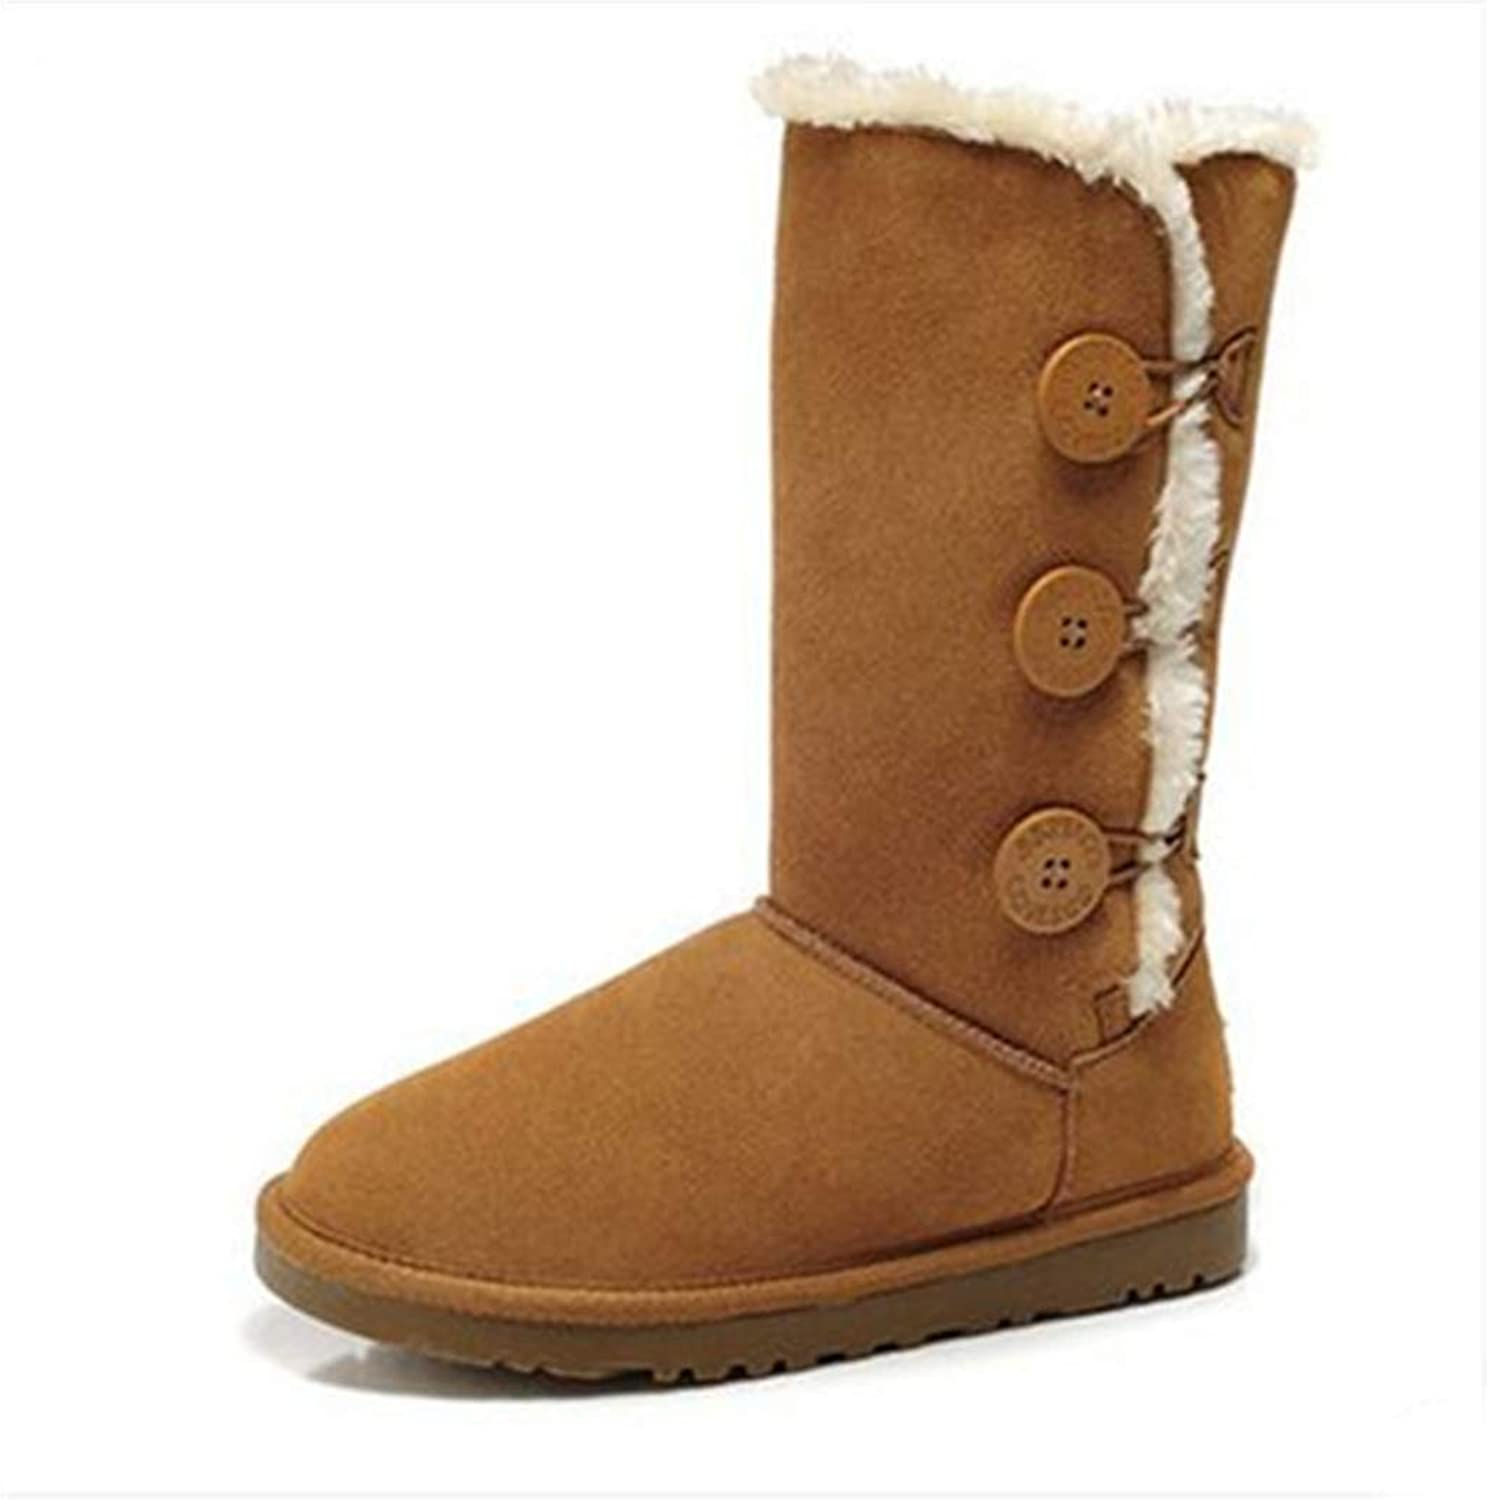 Kyle Walsh Pa Women's Winter Snow Velvet Slip on Solid Casual Boots